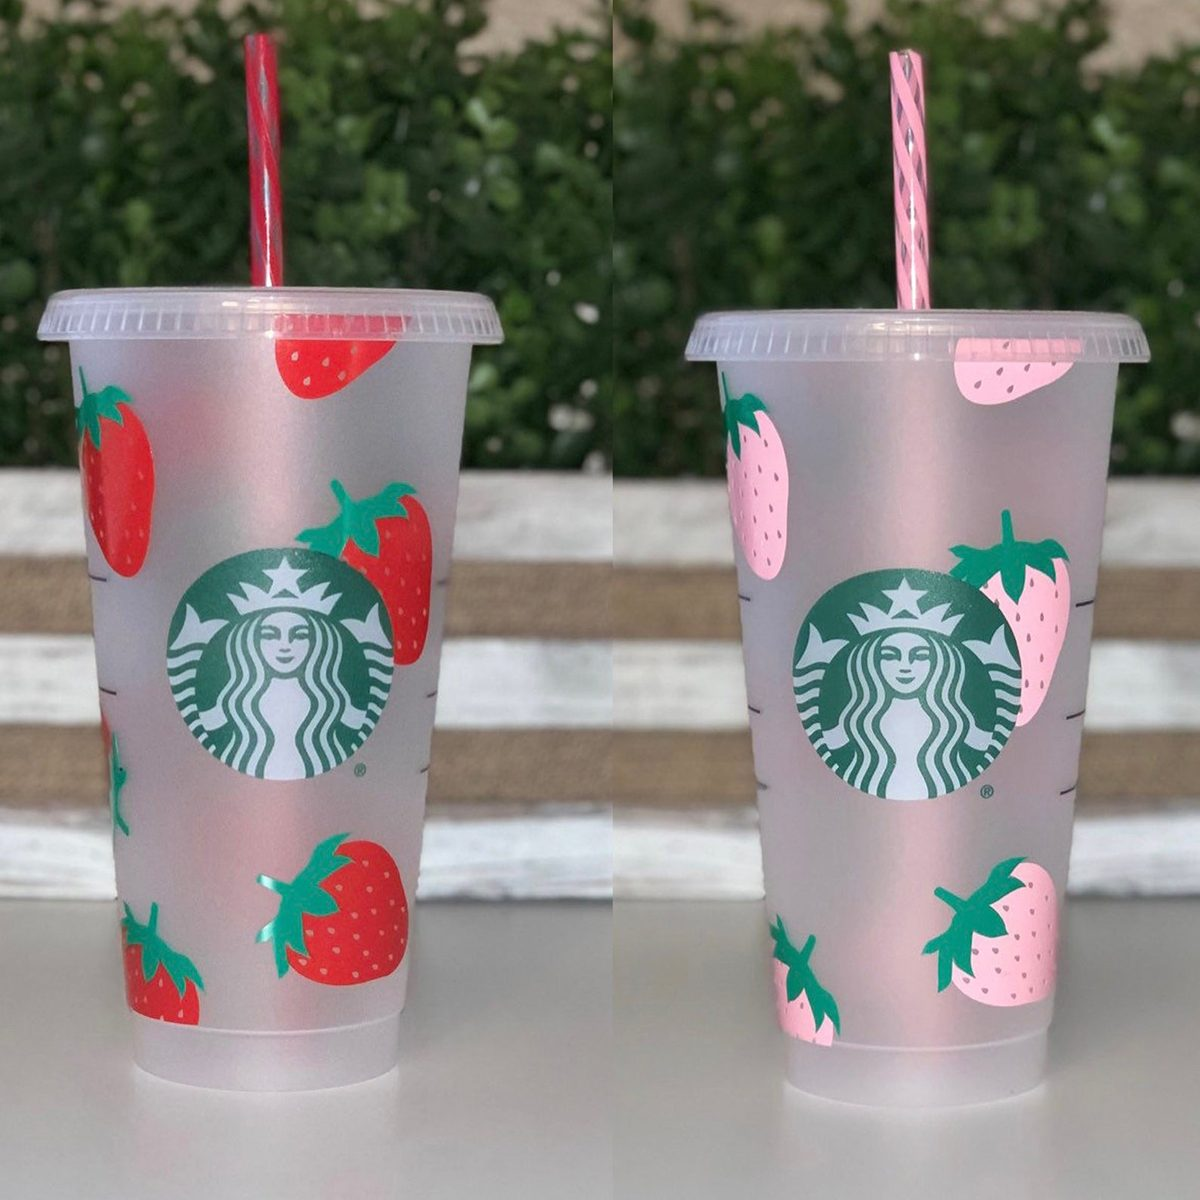 Strawberry Starbucks Cold Cup